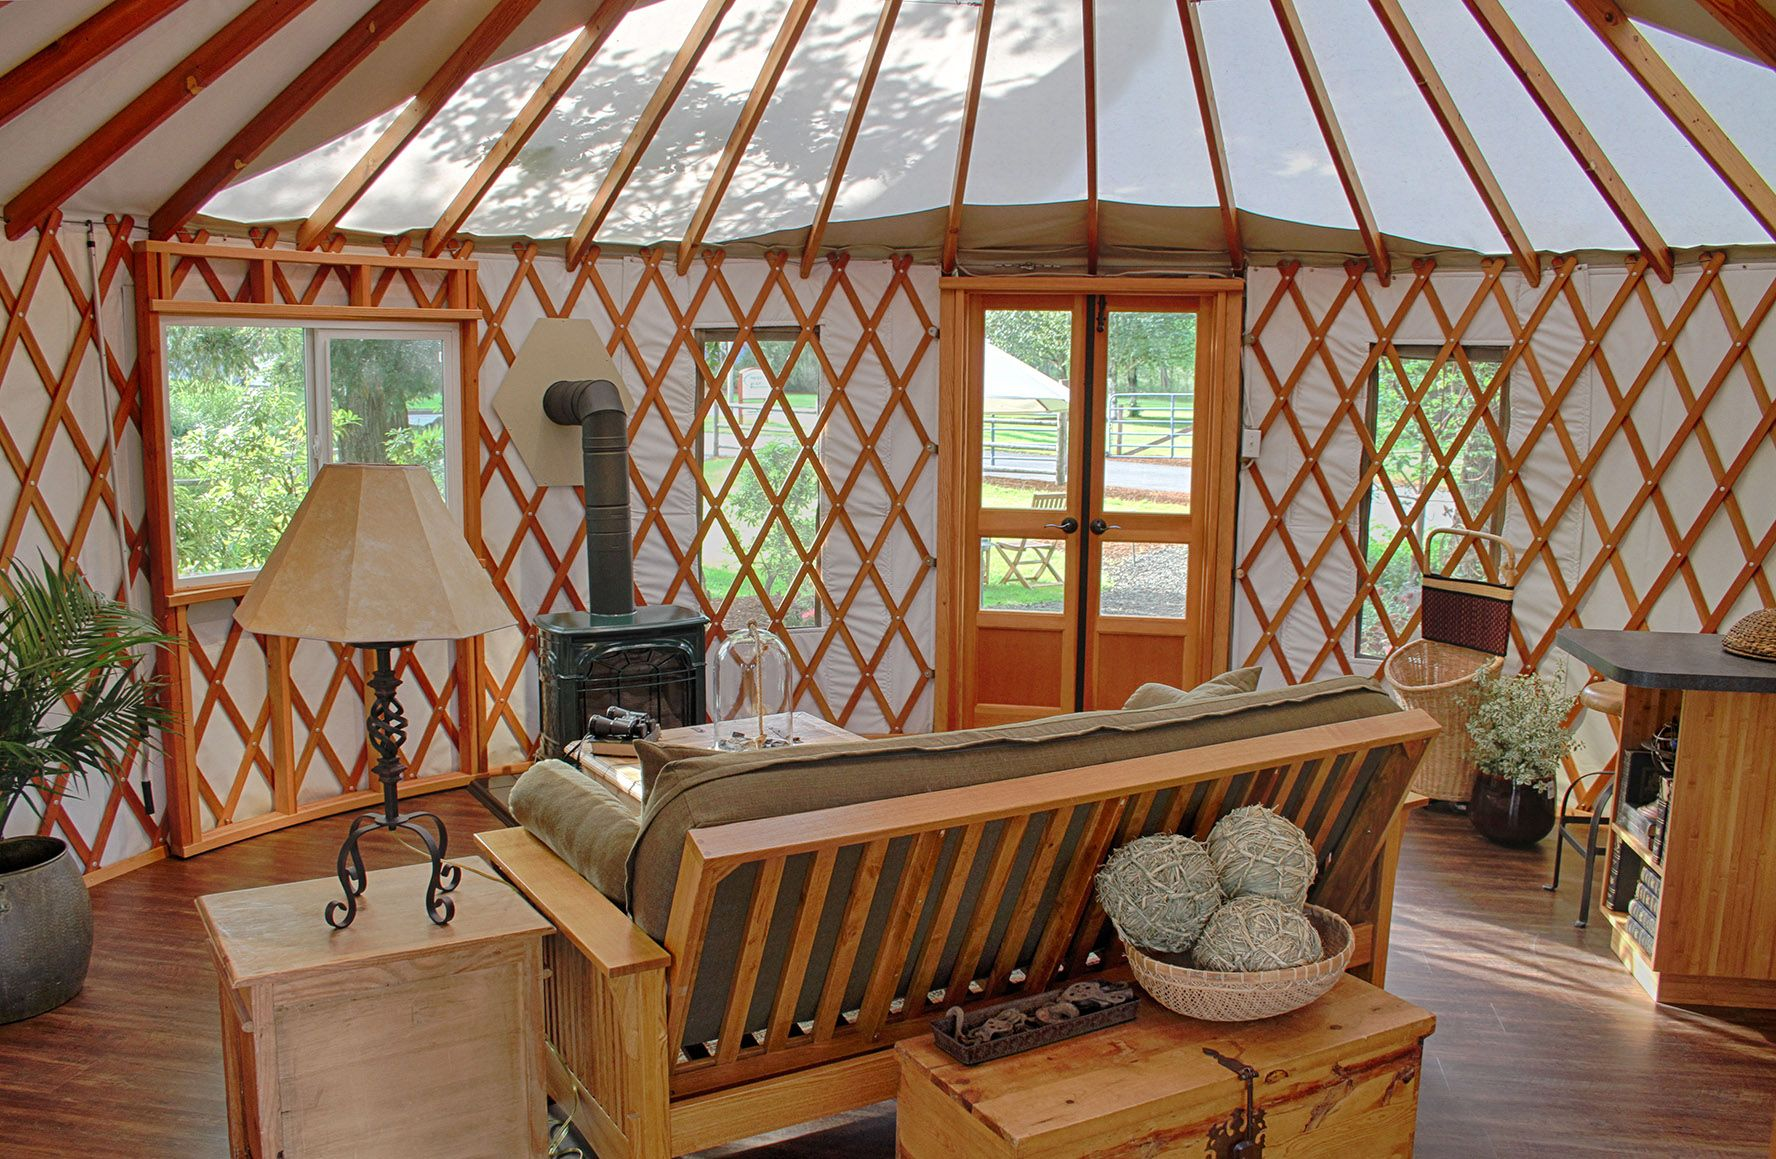 20' yurts - pacific yurts | guest cottage | pinterest | yurts